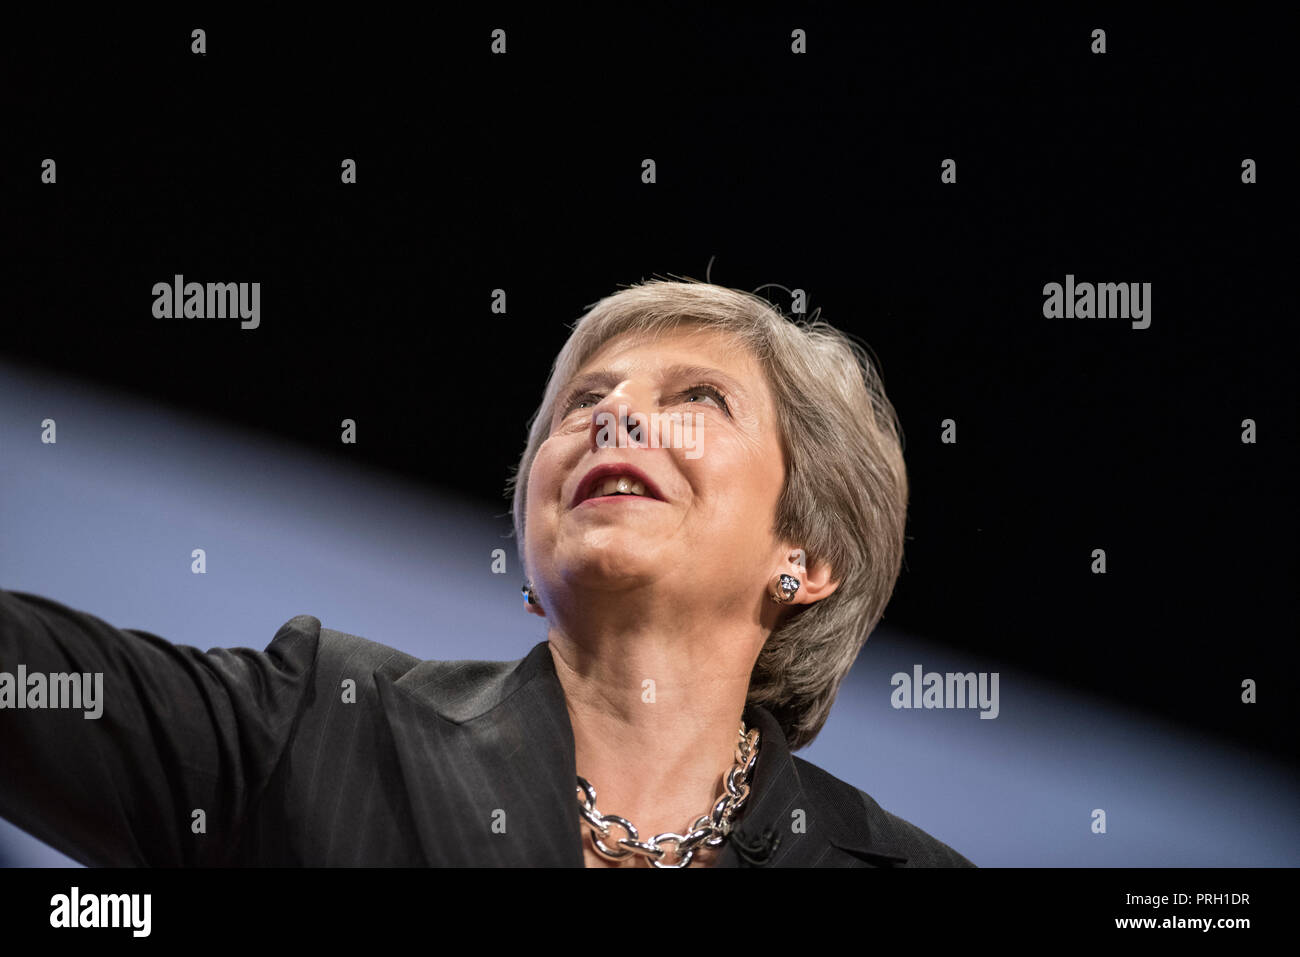 Birmingham, UK. 3 October 2018 - Prime Minister Theresa May delivers her speech at Conservative Party Conference 2018 in Birmingham, UK. Credit: Benjamin Wareing/Alamy Live News - Stock Image